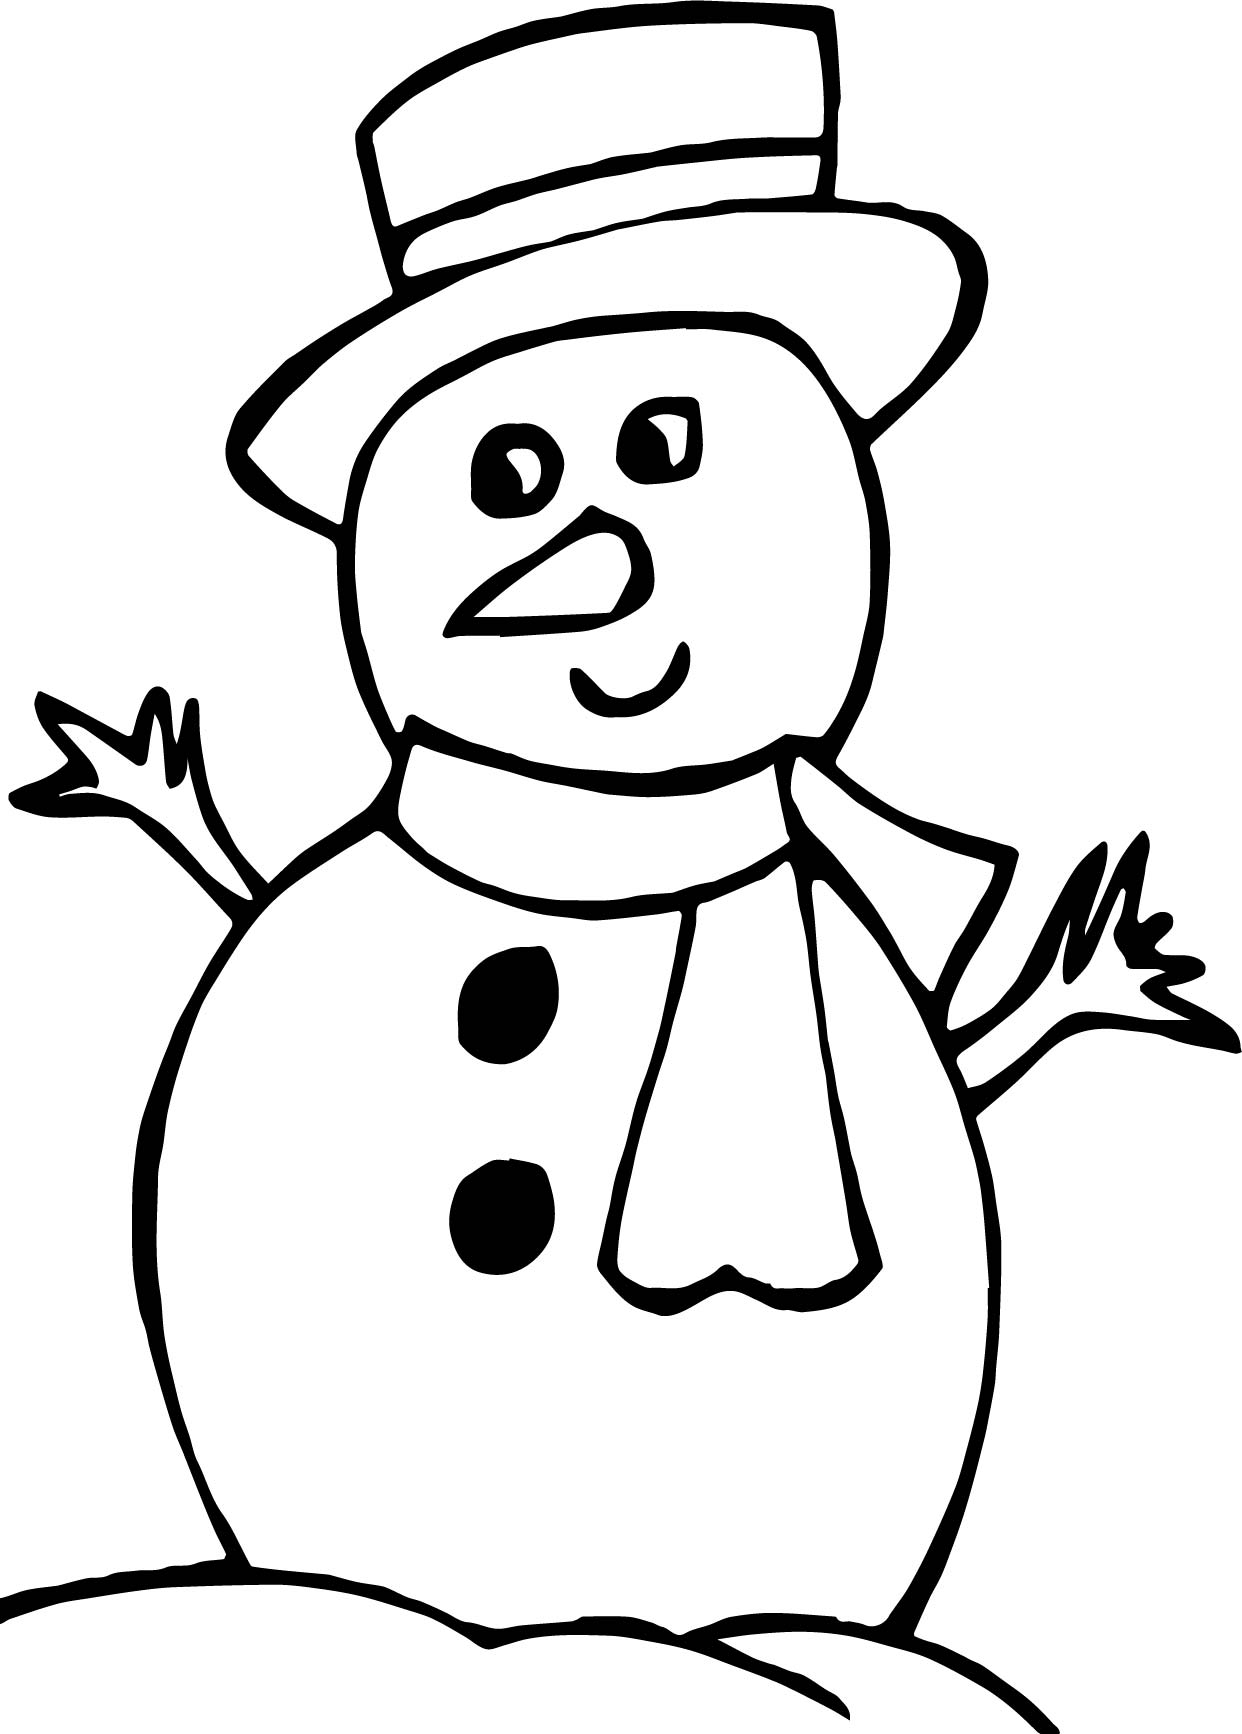 snowman coloring coloring pages christmas snowman coloring pages free and snowman coloring